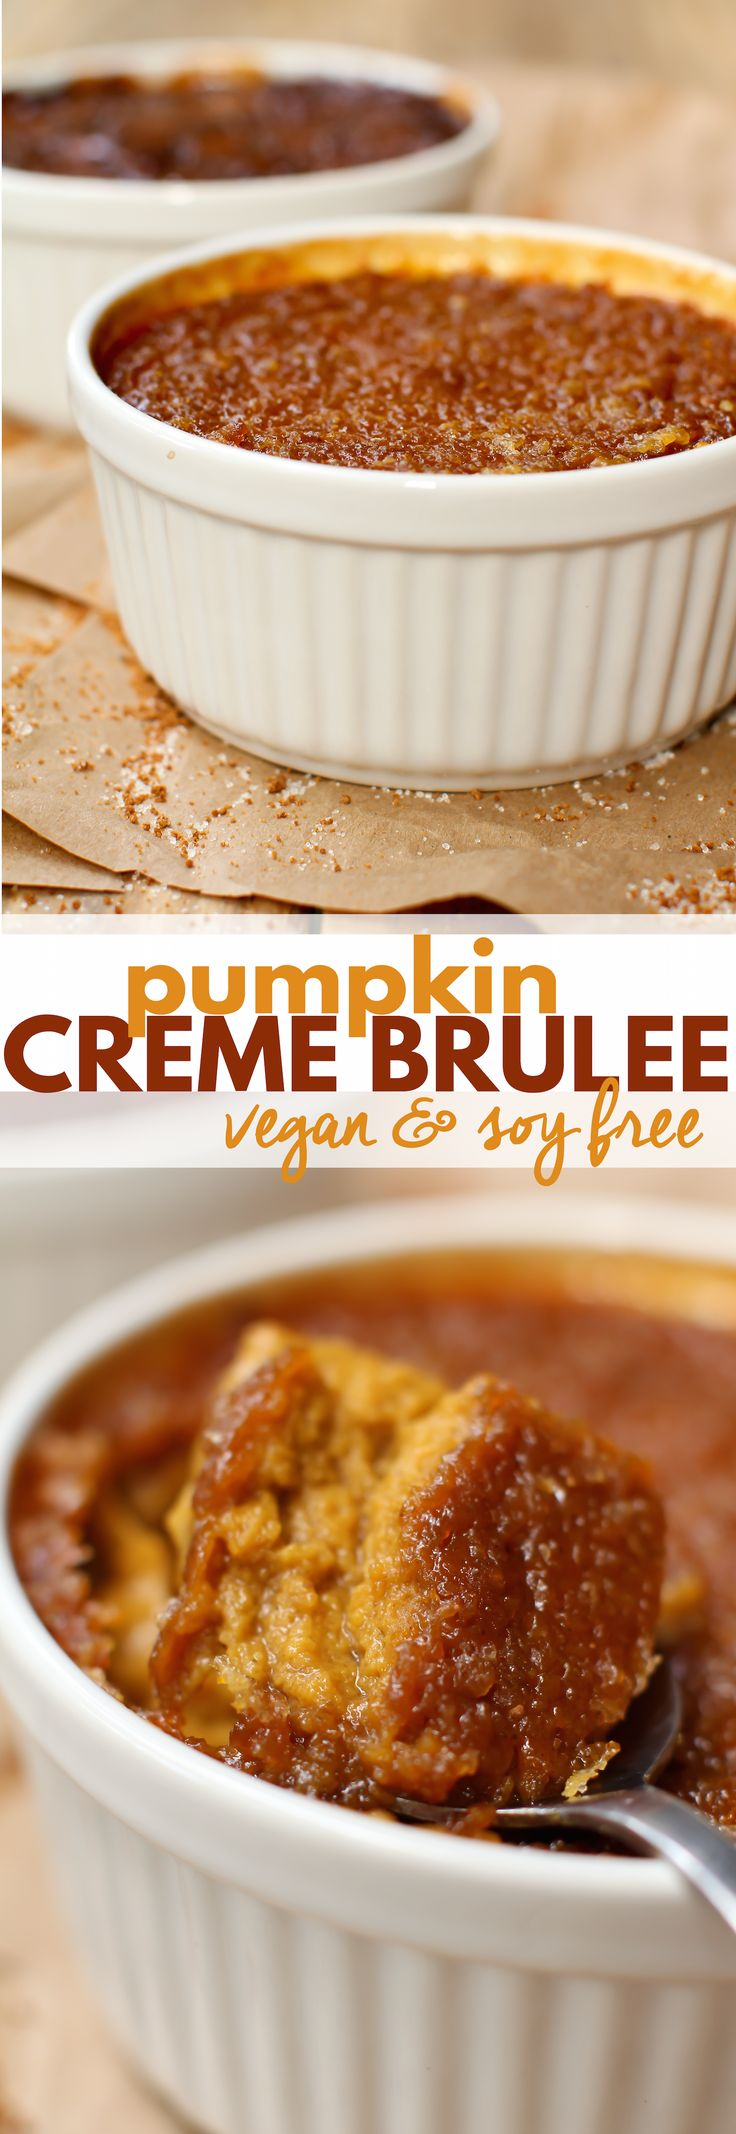 Vegan Pumpkin Creme Brûlée - Soyfree.   I used homemade canned pumpkin puree…